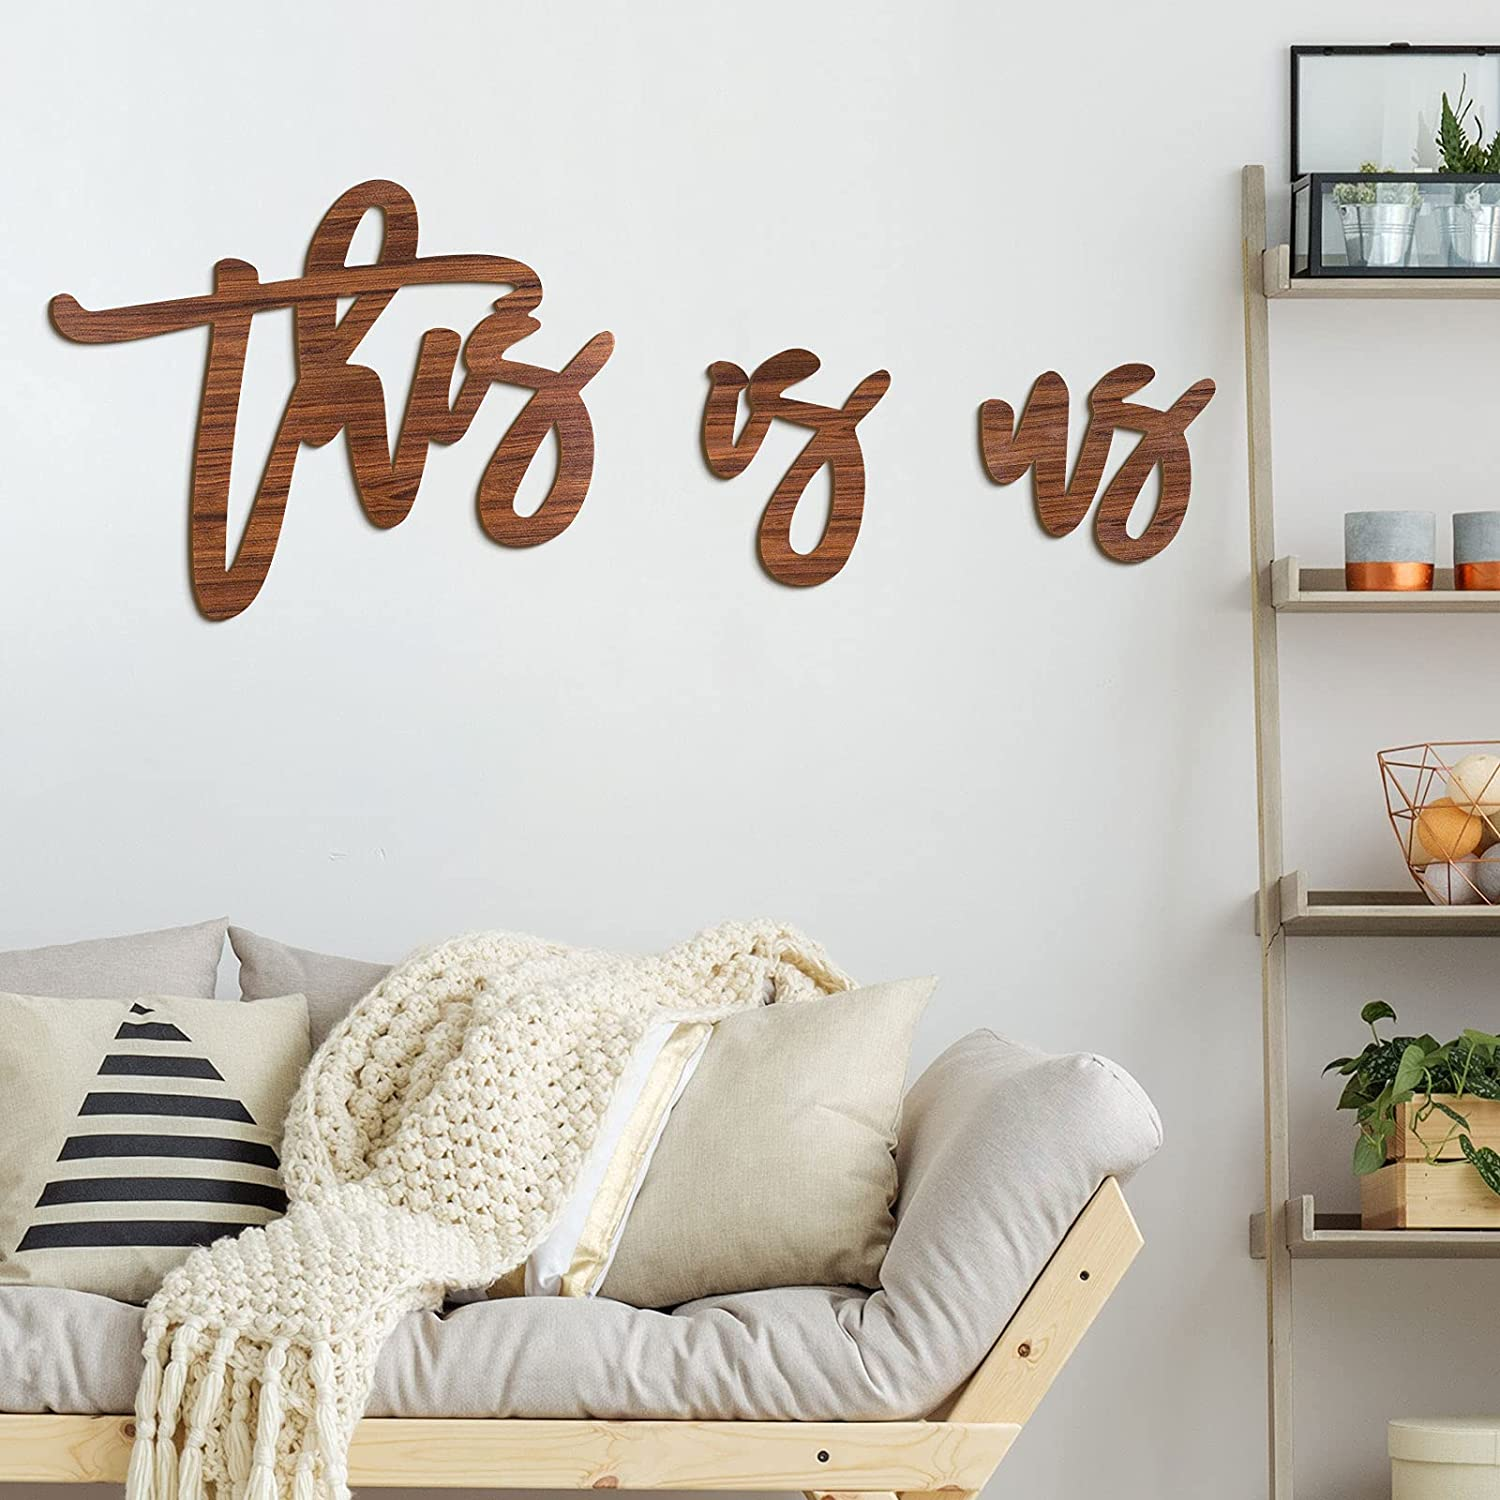 This is Us Wood Cutout Words This is Us Laser Cut Sign This is Us Wood Letter Words Wall Sign Rustic Farmhouse Wood Sign Wall Decor for Family Bedroom, Living Room, Home Decor (Brown)